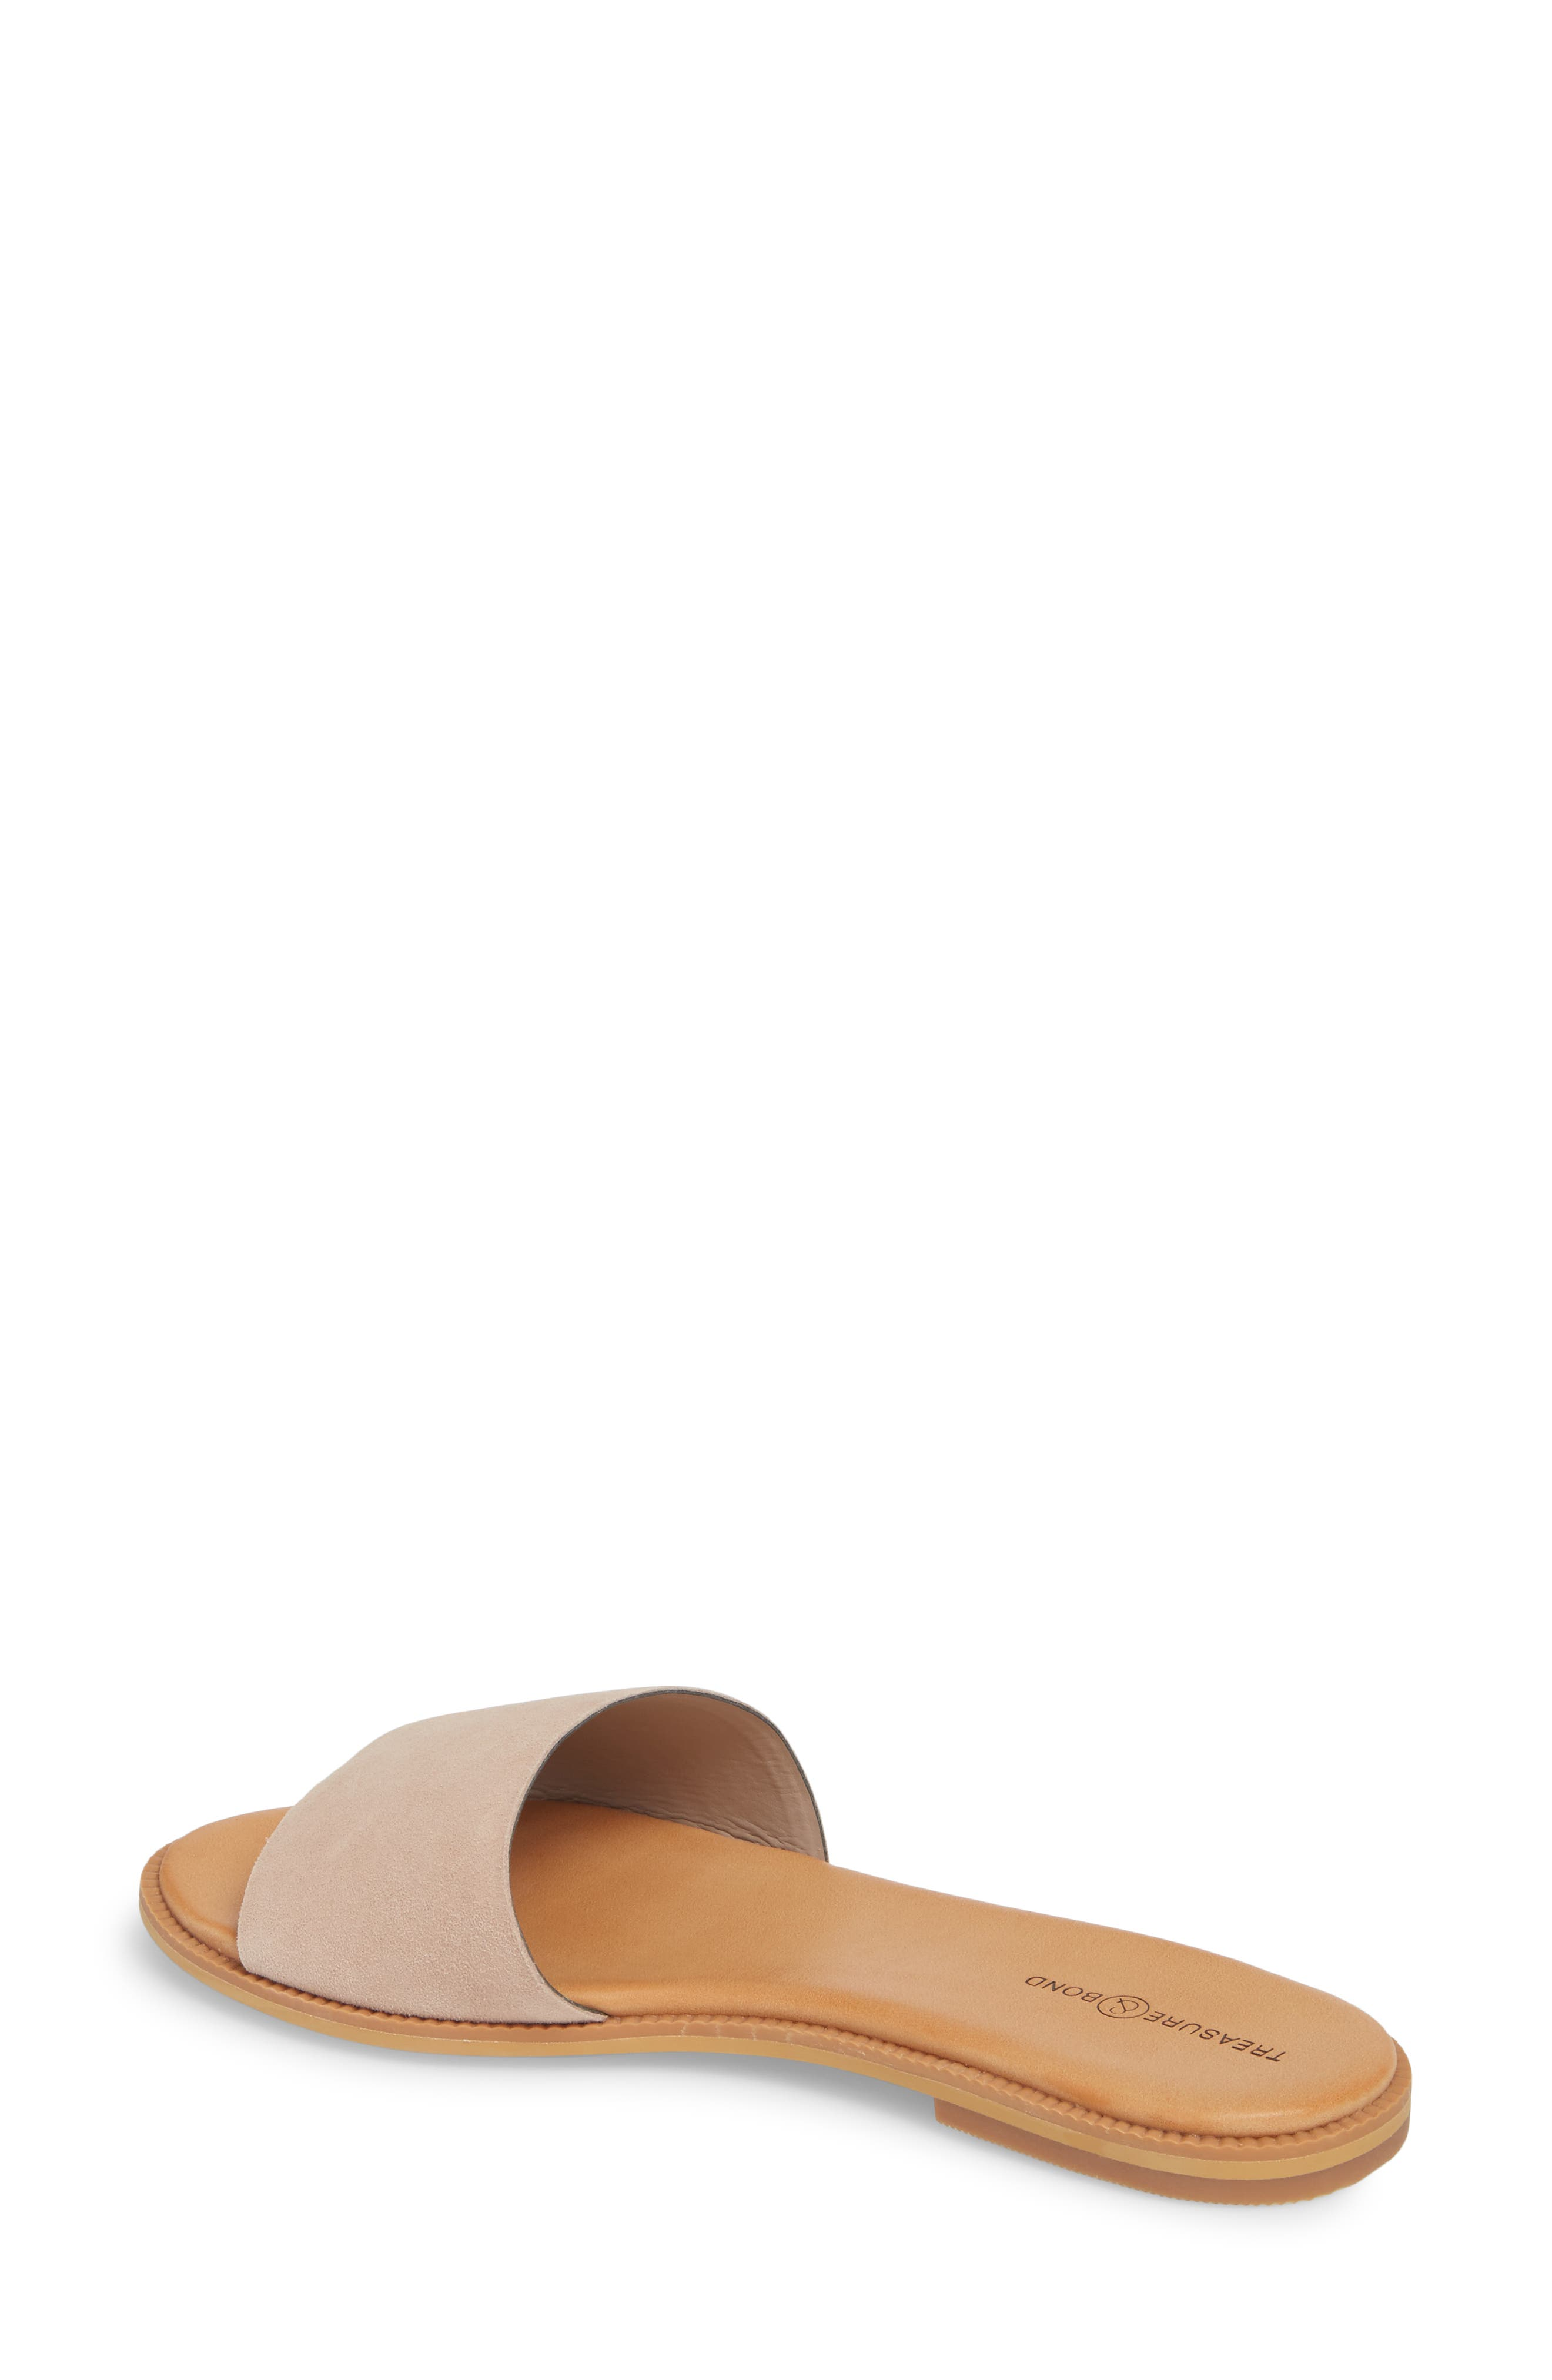 Mere Flat Slide Sandal,                             Alternate thumbnail 2, color,                             658